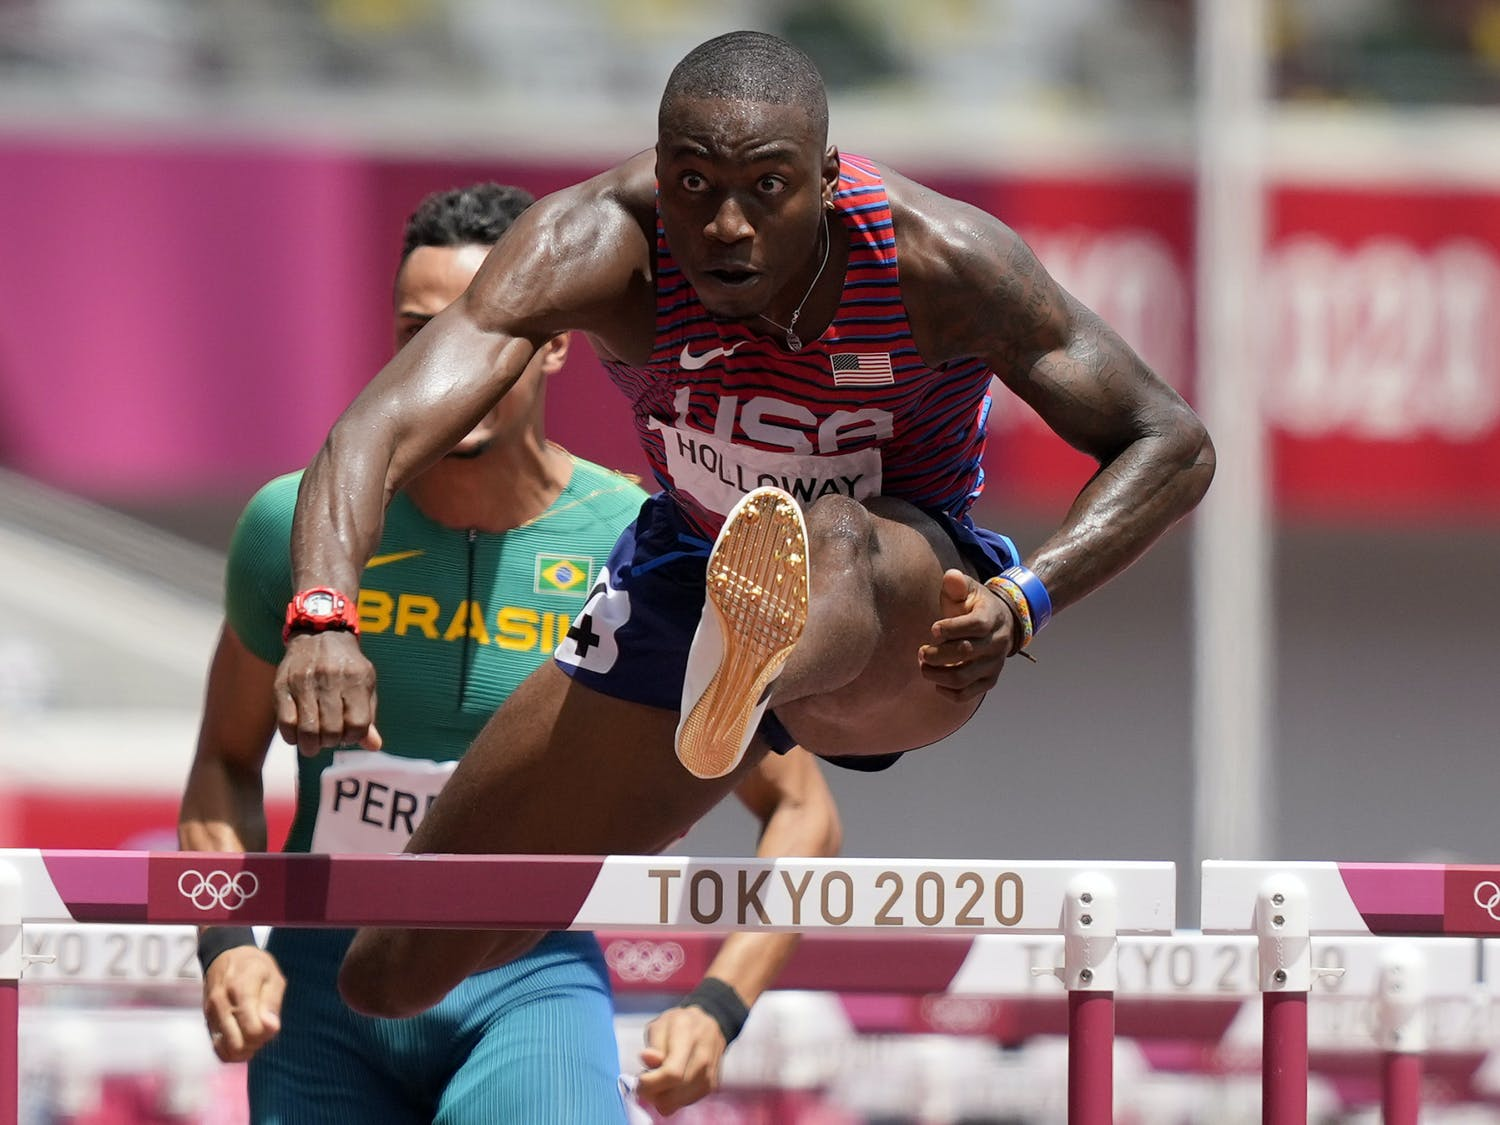 Grant Holloway, of United States competes in a men's 110-meter hurdles semifinal at the 2020 Summer Olympics, Wednesday, Aug. 4, 2021, in Tokyo, Japan. (AP Photo/Martin Meissner)